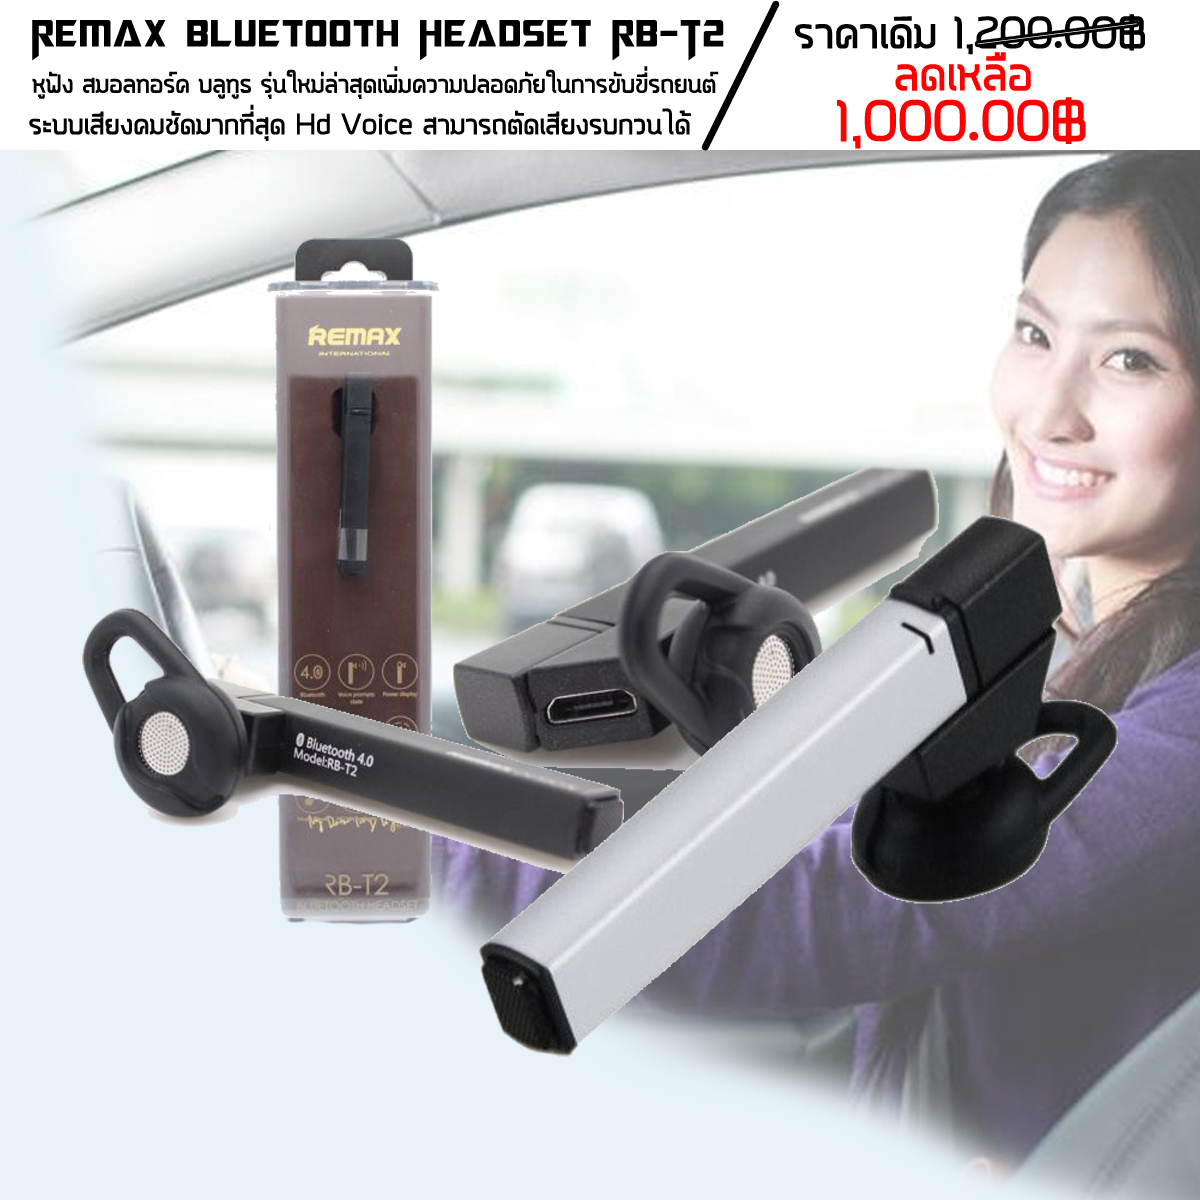 Remax Bluetooth Headset RB-T2